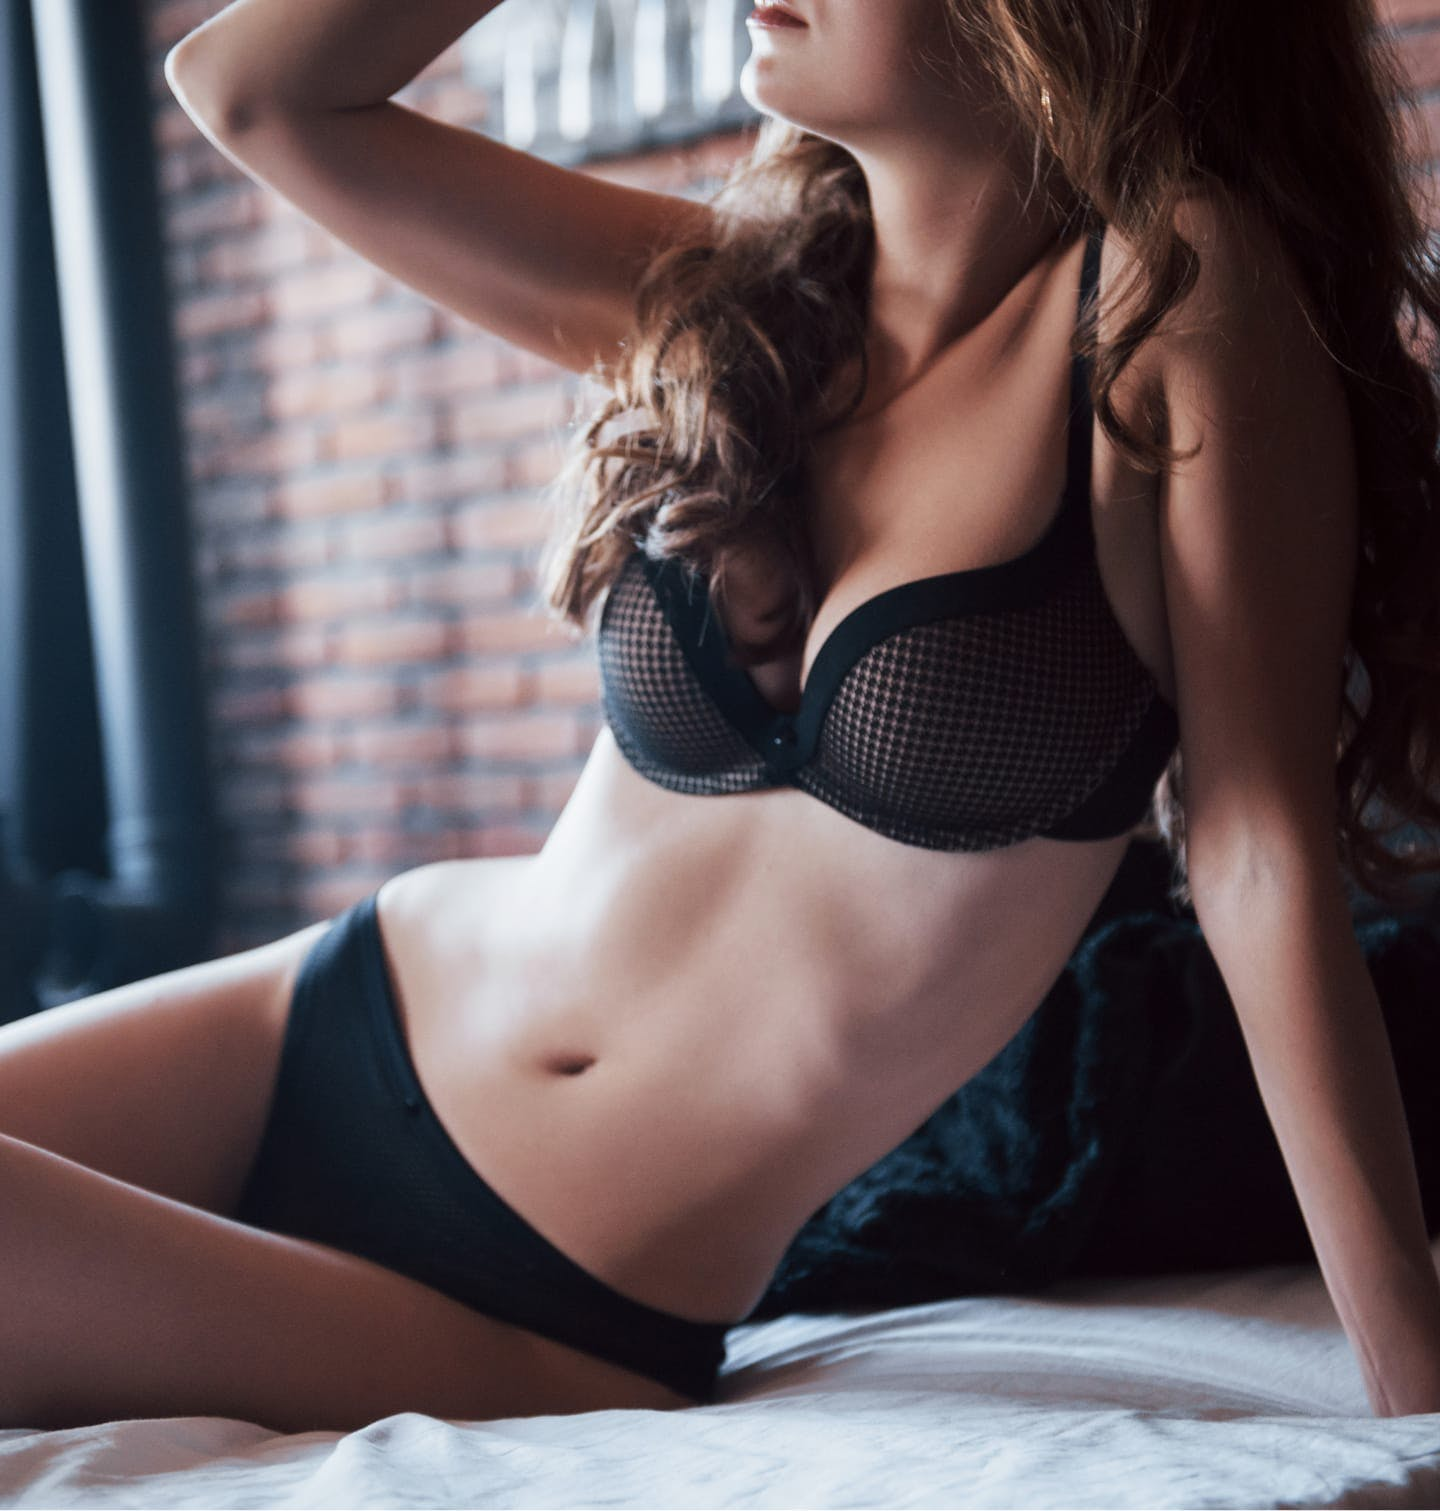 Hot model laying in bed wearing lingerie